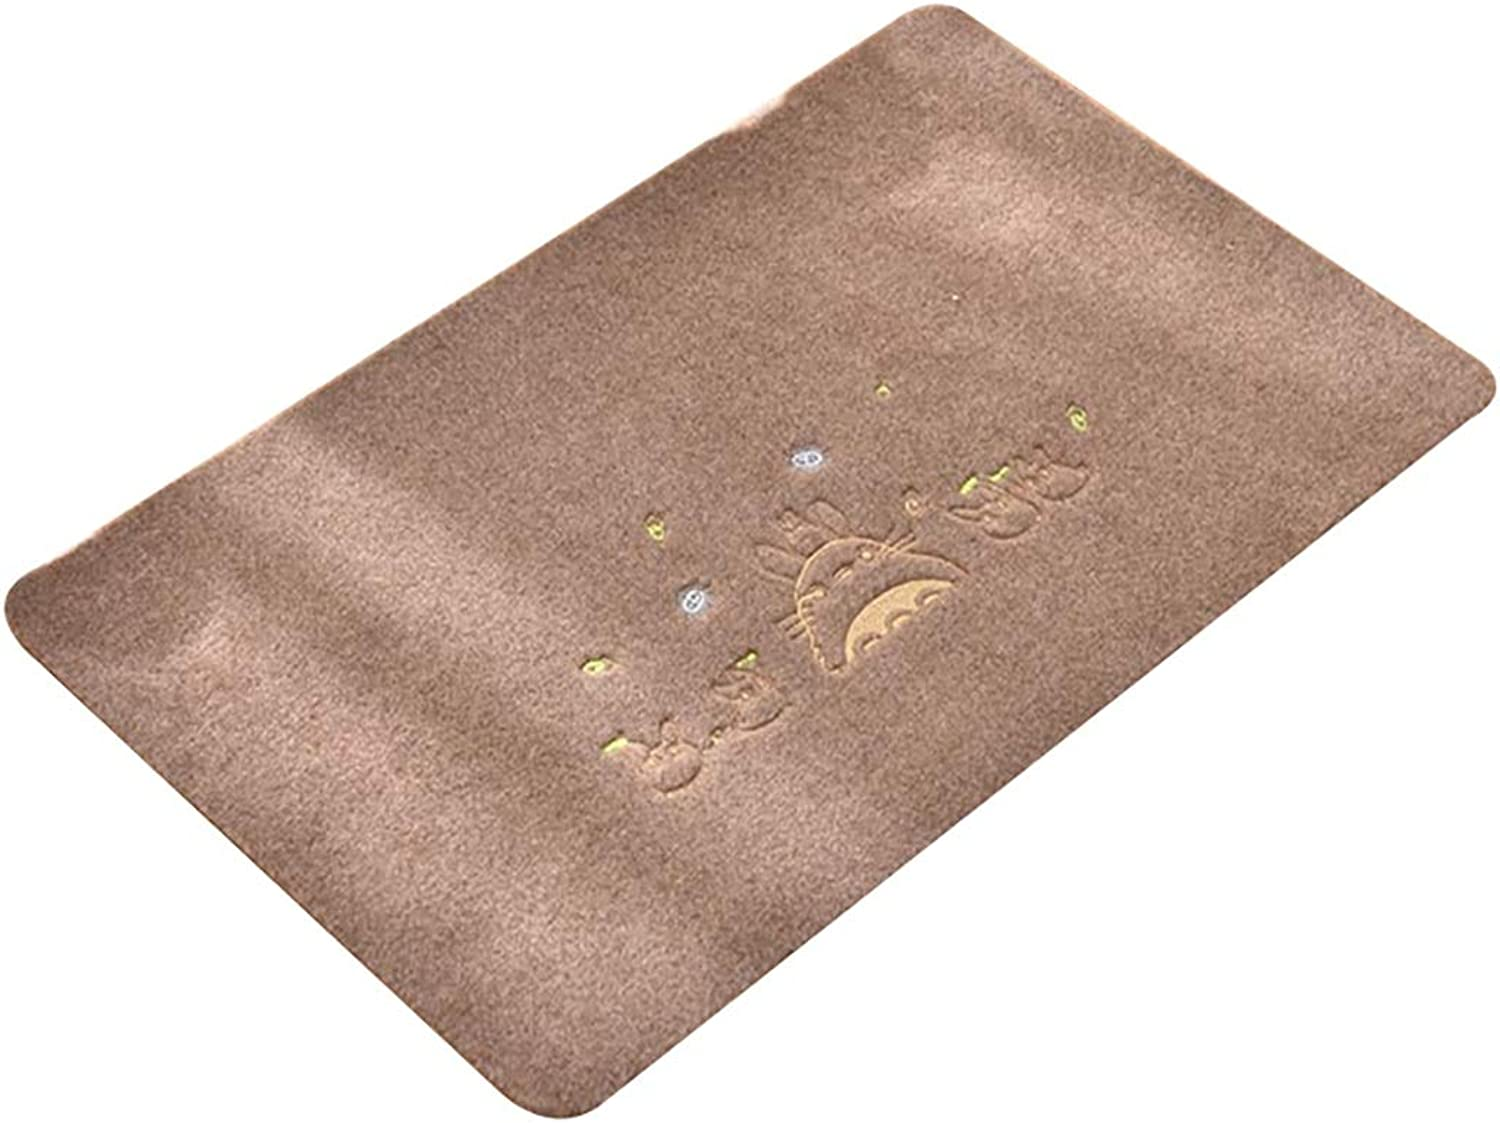 Entrance Mat, TPR Environmental Predection Non-Slip Door Mat Embroidered Carpet Polyester Surface Dust-Proof Resistance Mud Water-Absorbing Floor Mat Doormat (color   Brown, Size   80×120cm)